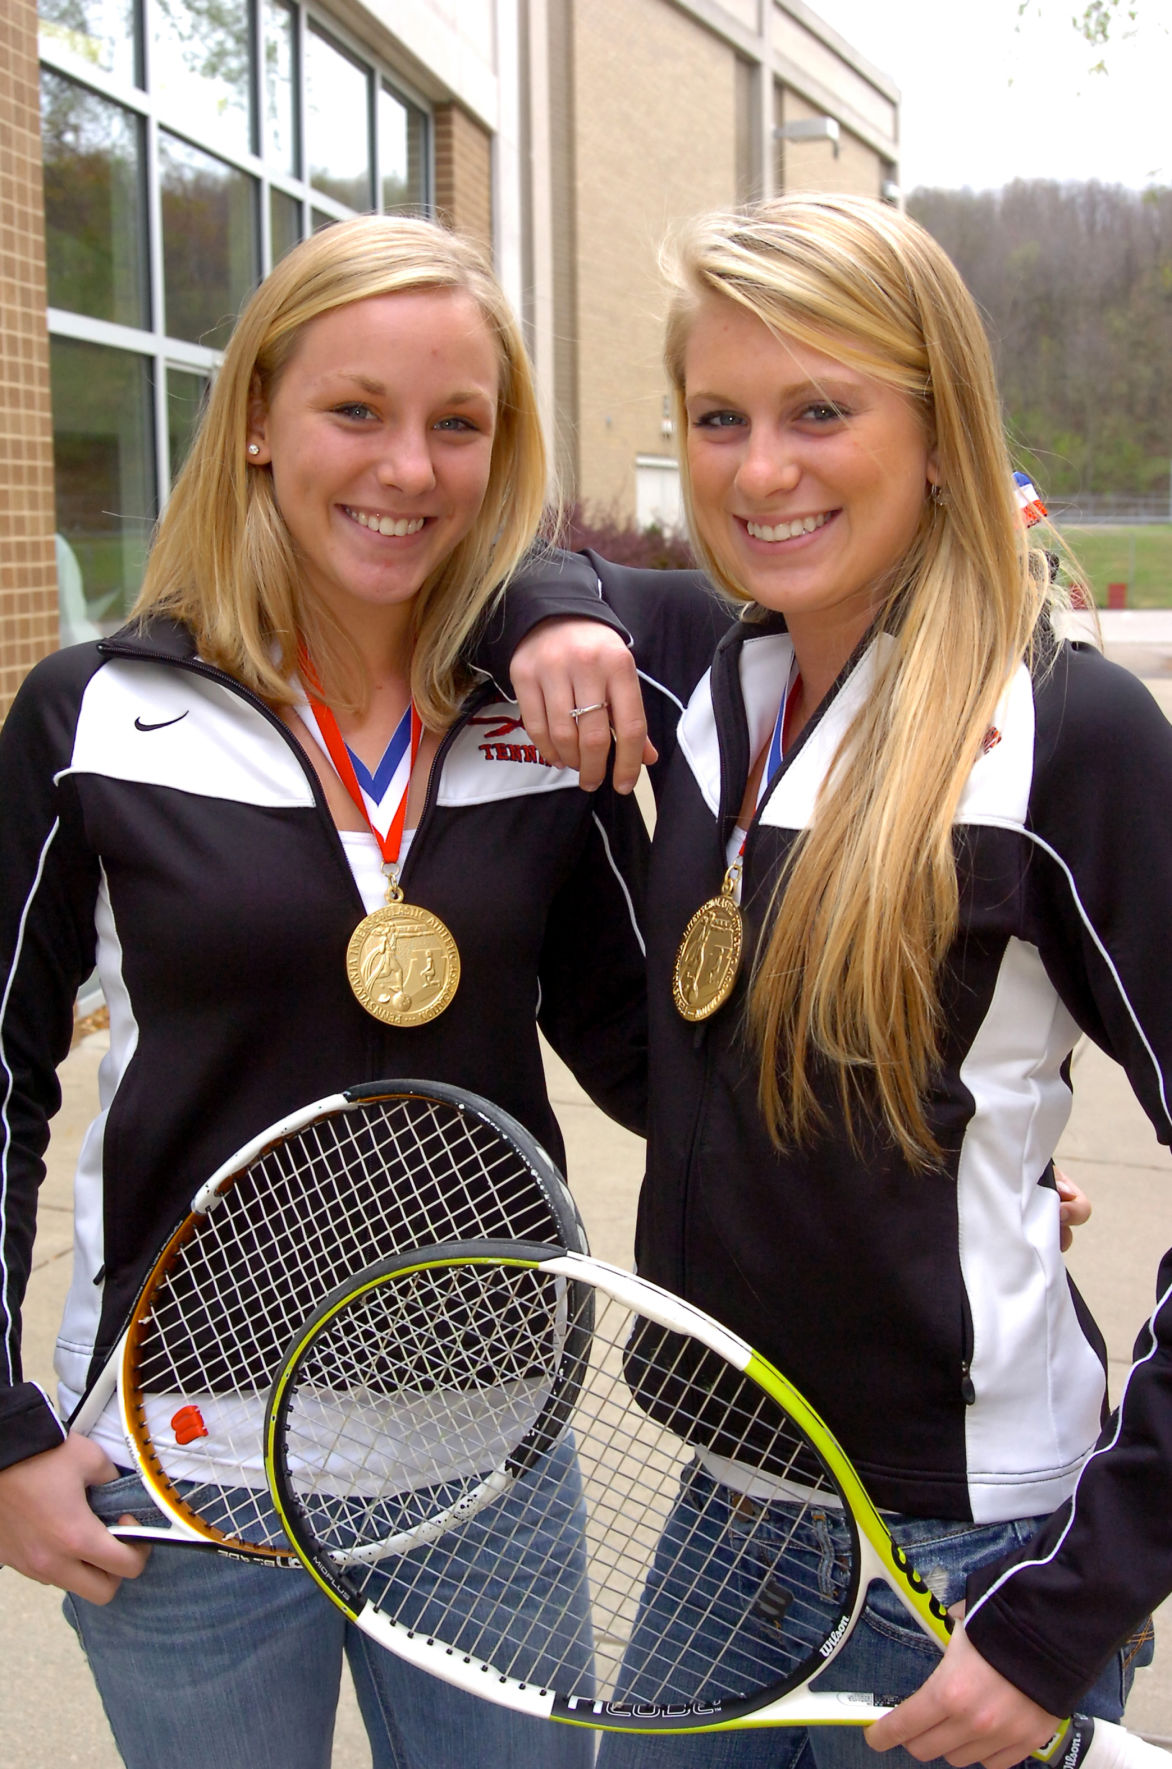 PETERS TOWNSHIP TENNIS ATHLETES OF THE WEEK